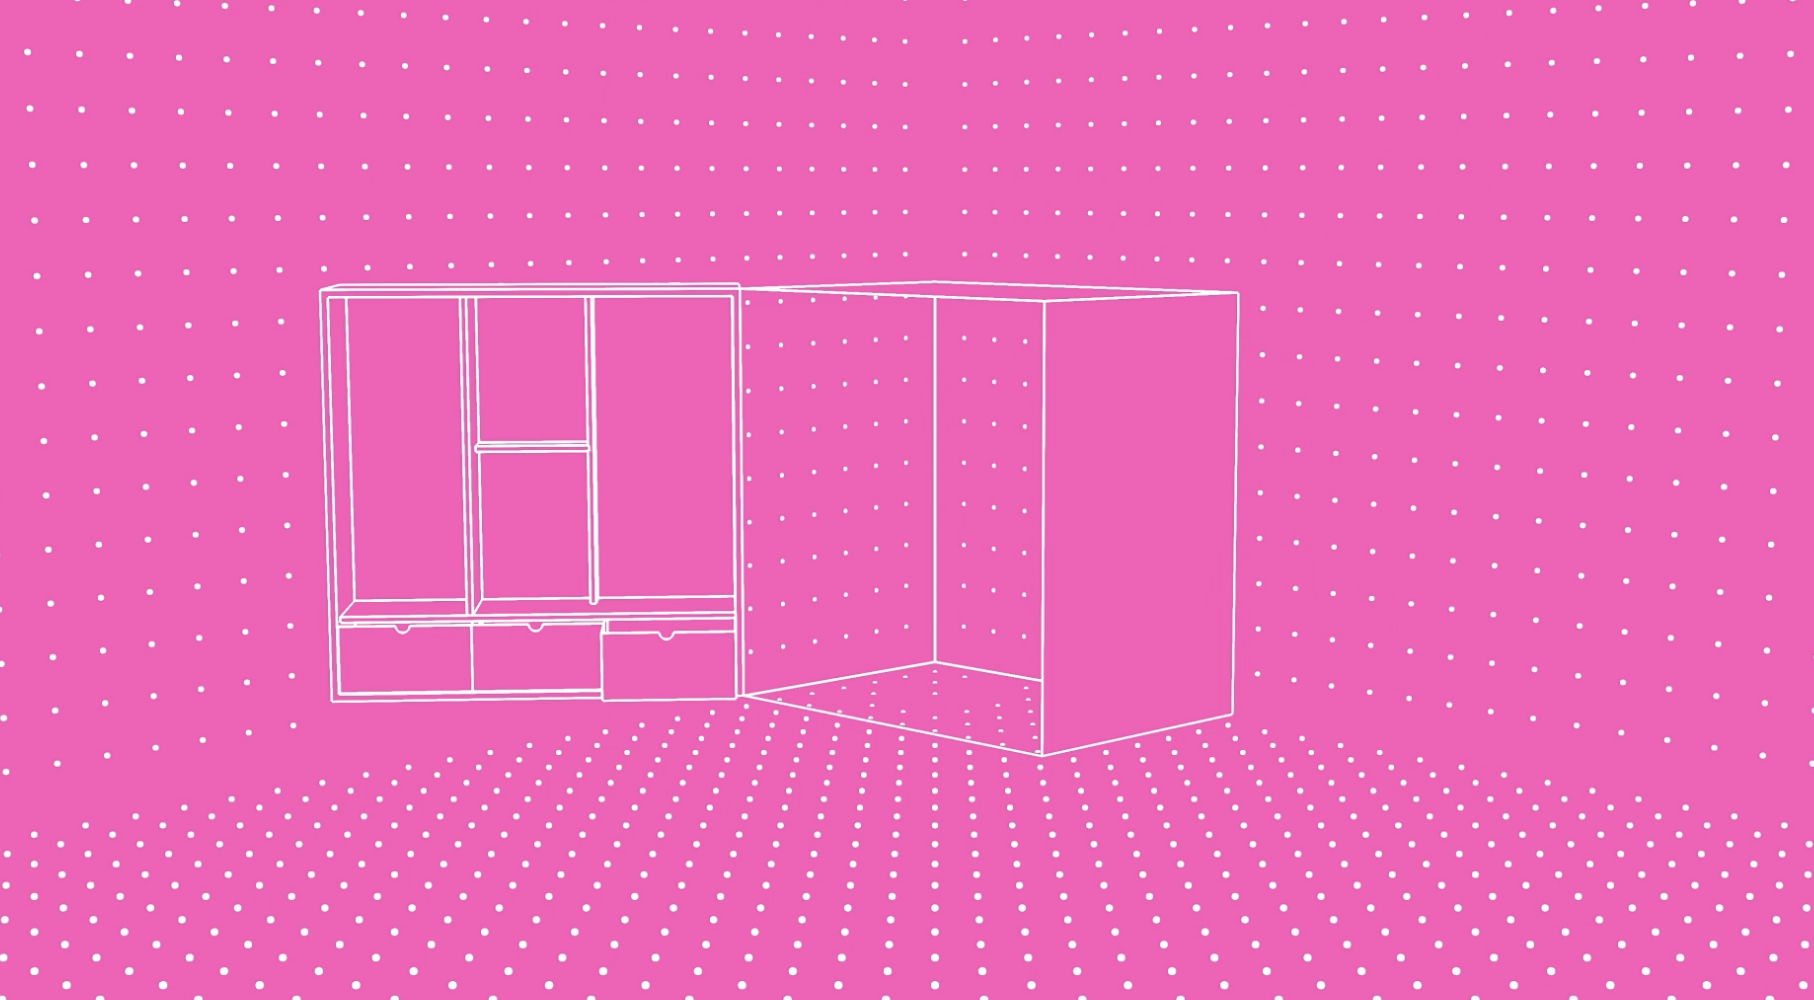 The Play Pod opens up to reveal three distinct configurations, devised to house a variety of interactive and all-ages activities as part of the festival.